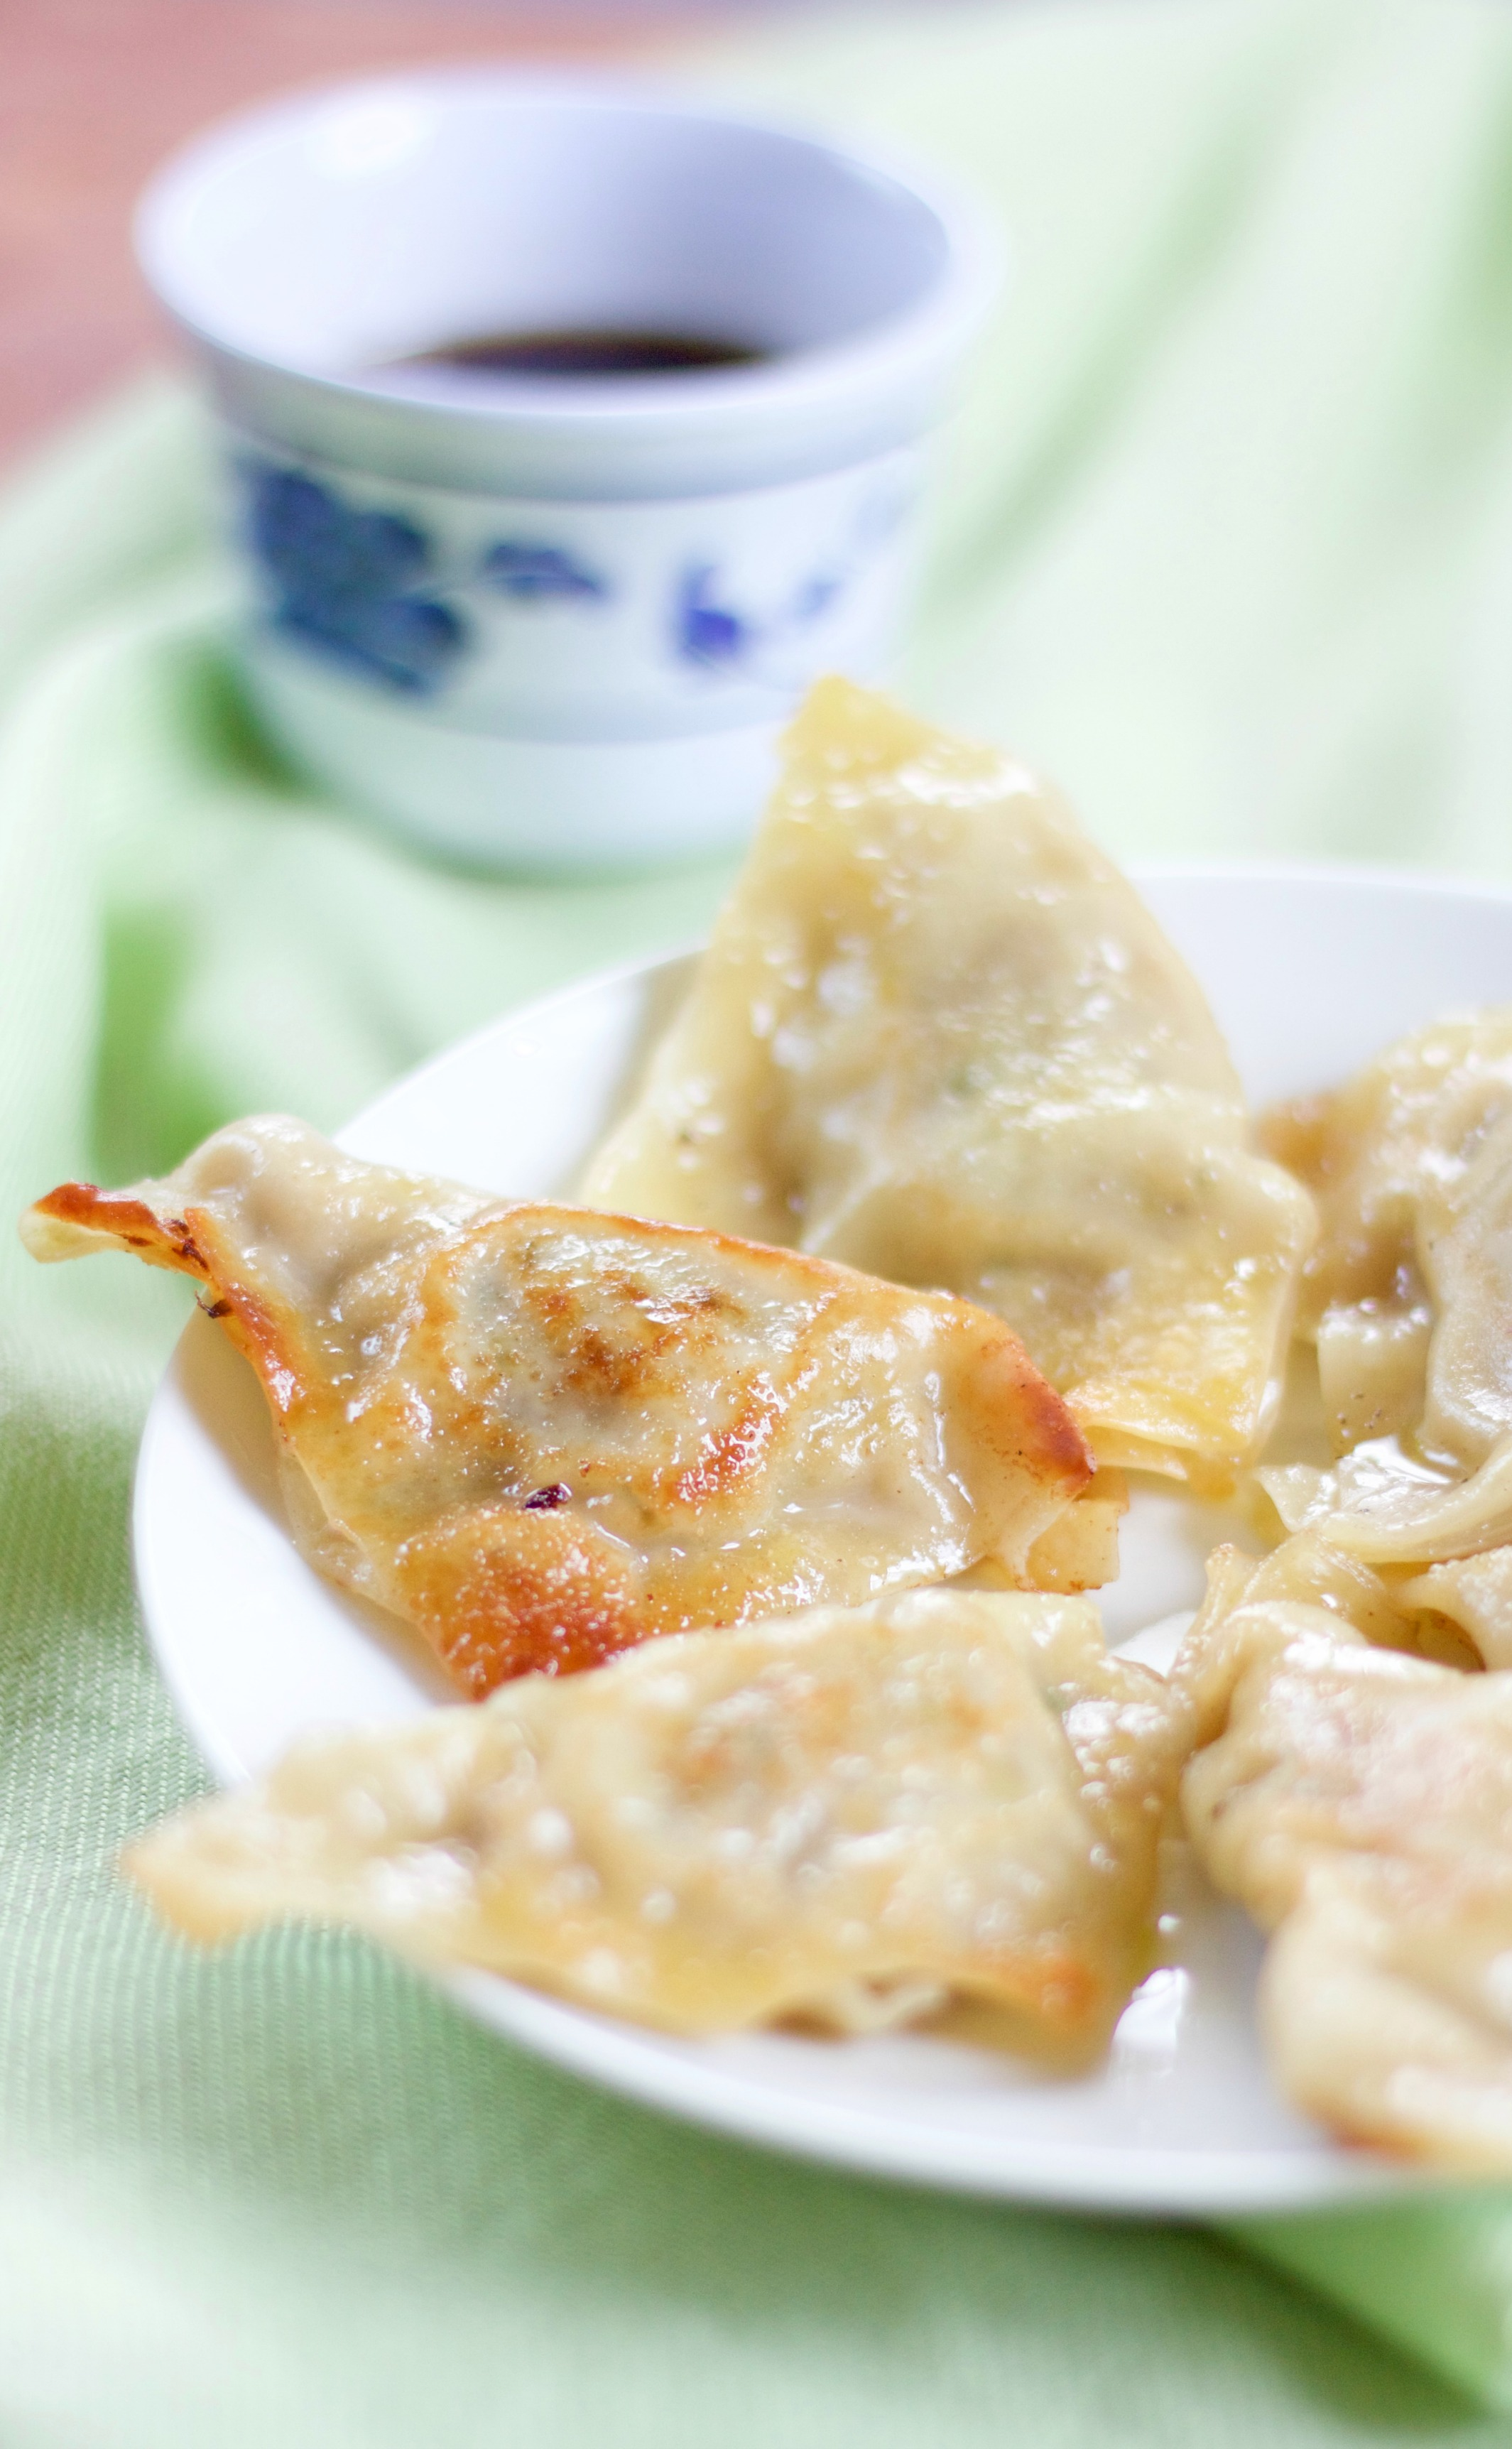 This recipe for authentic Korean pork dumplings, Mandu, makes enough for a crowd or lots of snacks!